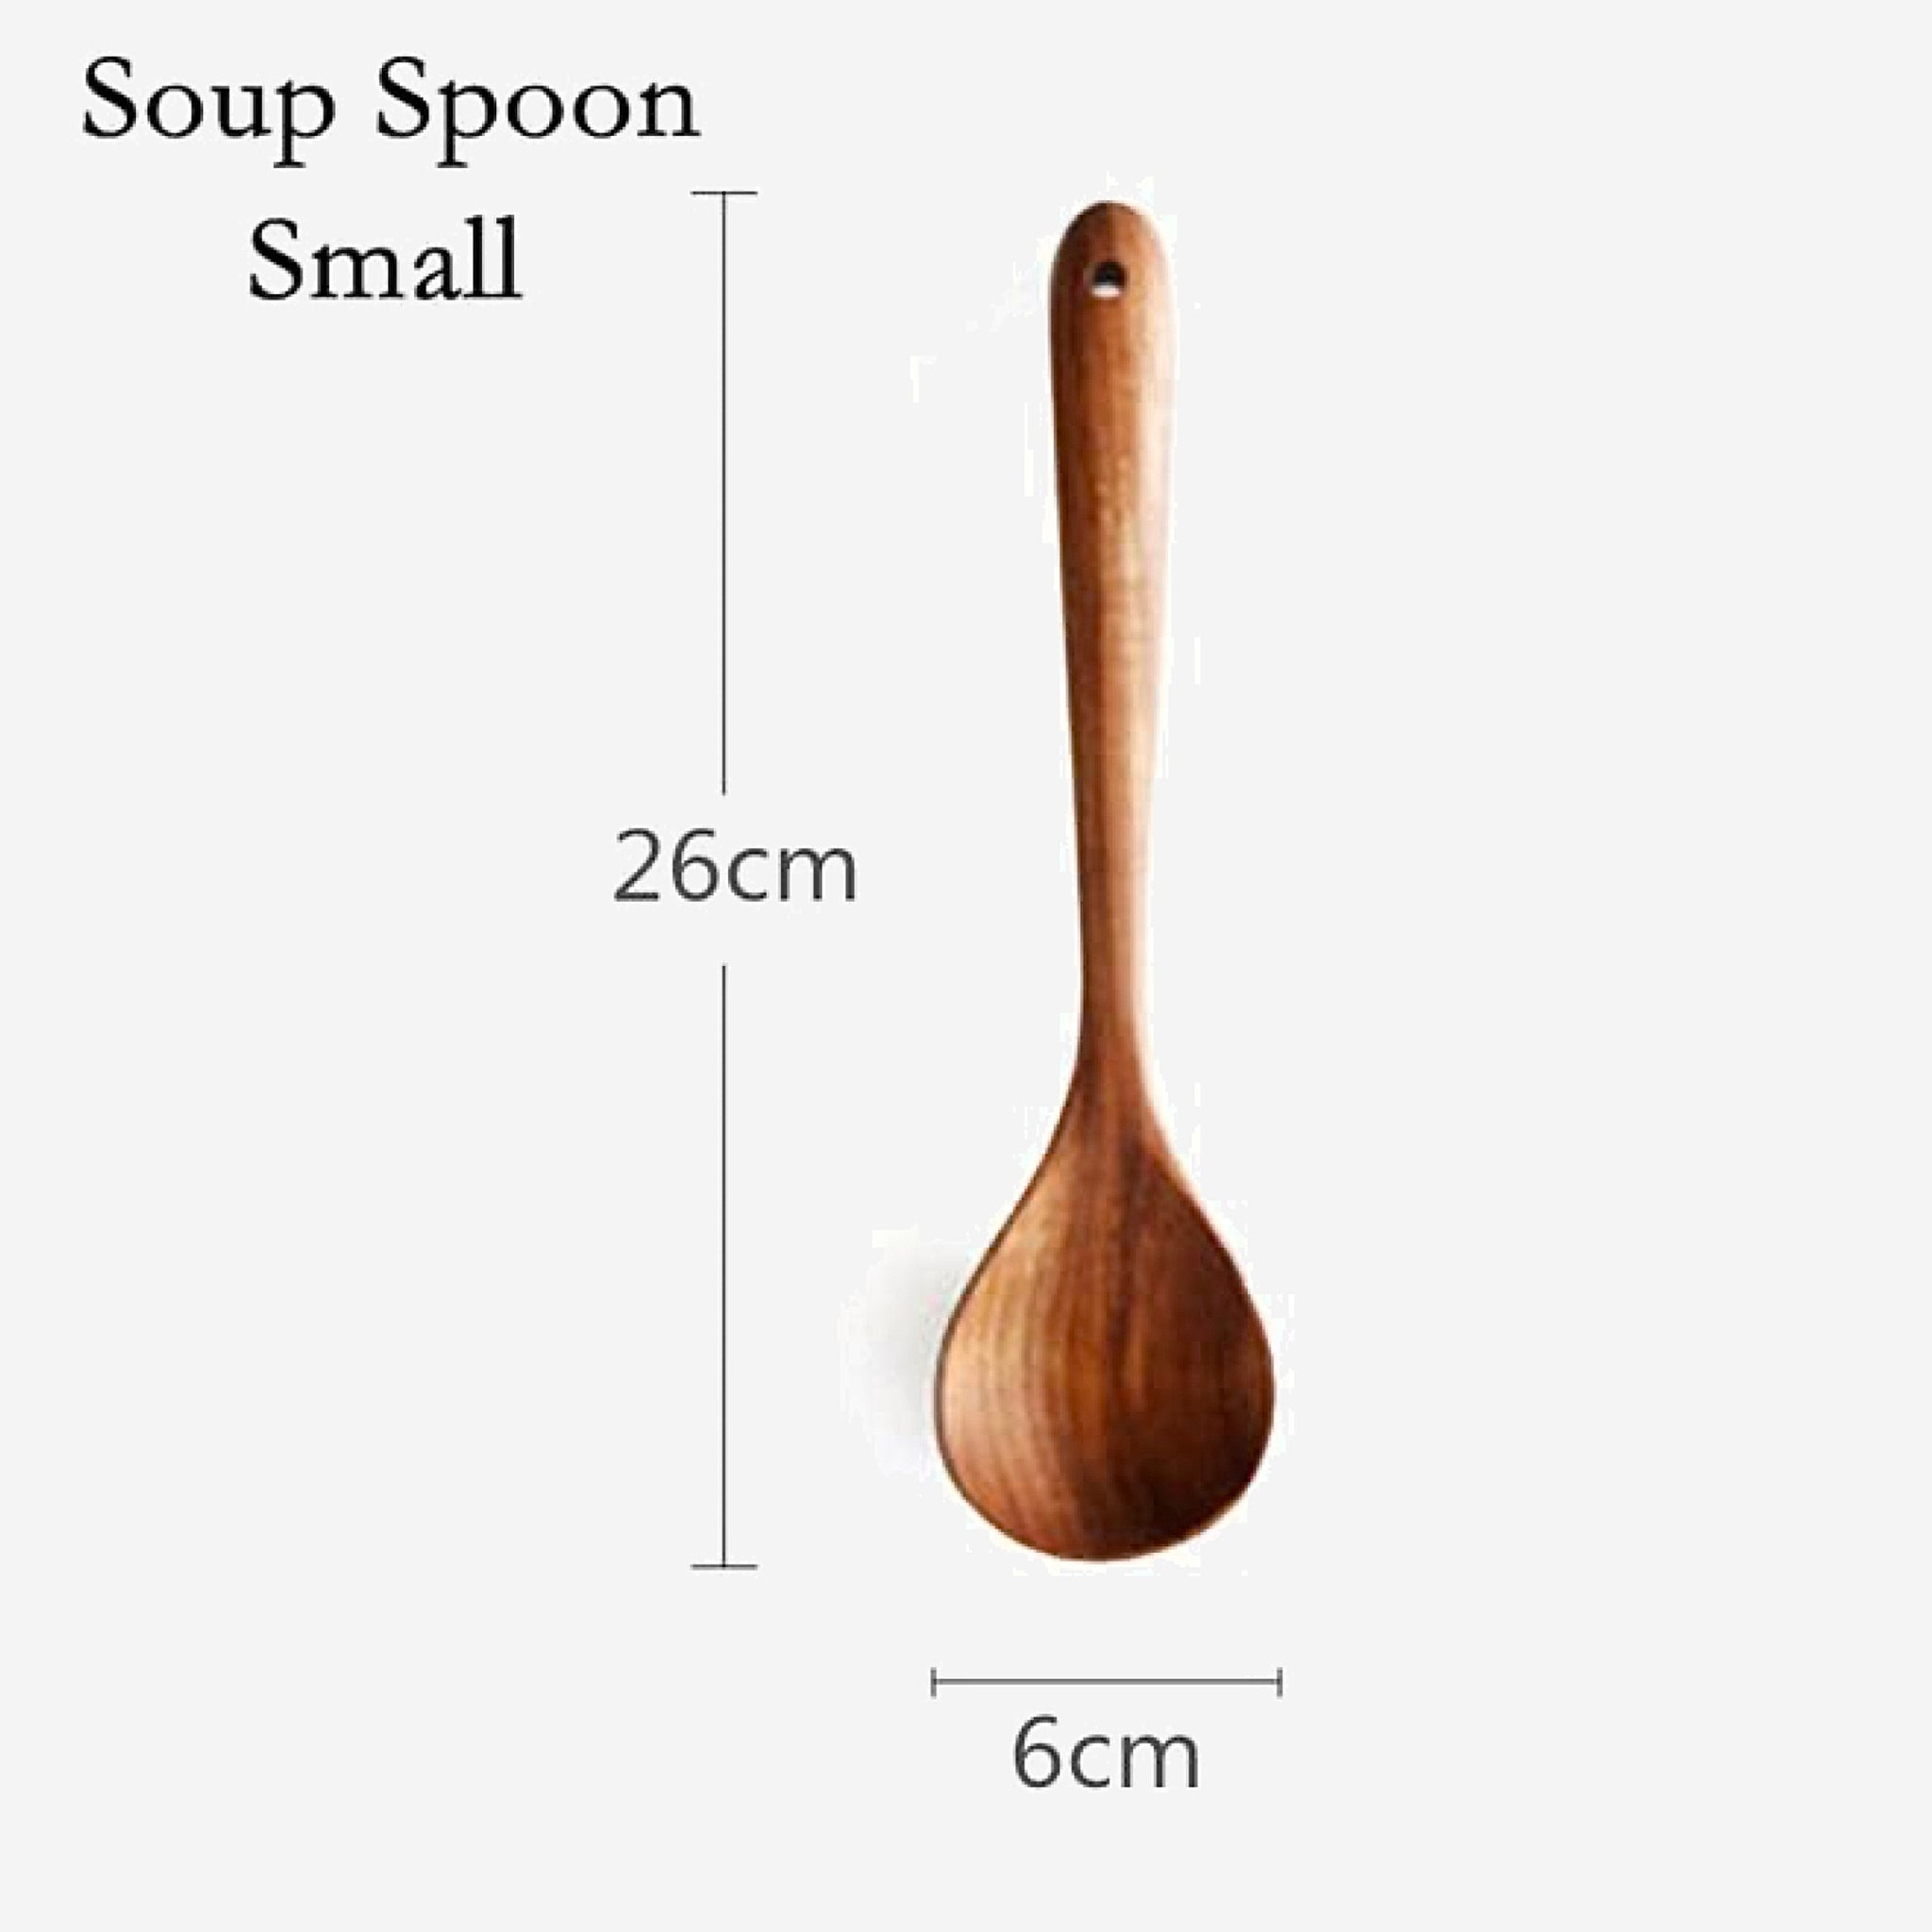 Teak Wood Utensils Set Soup Spoon Small Spatula Tableware Wooden Non-stick Cooking Tools Kitchen Set Kitchen Accessories